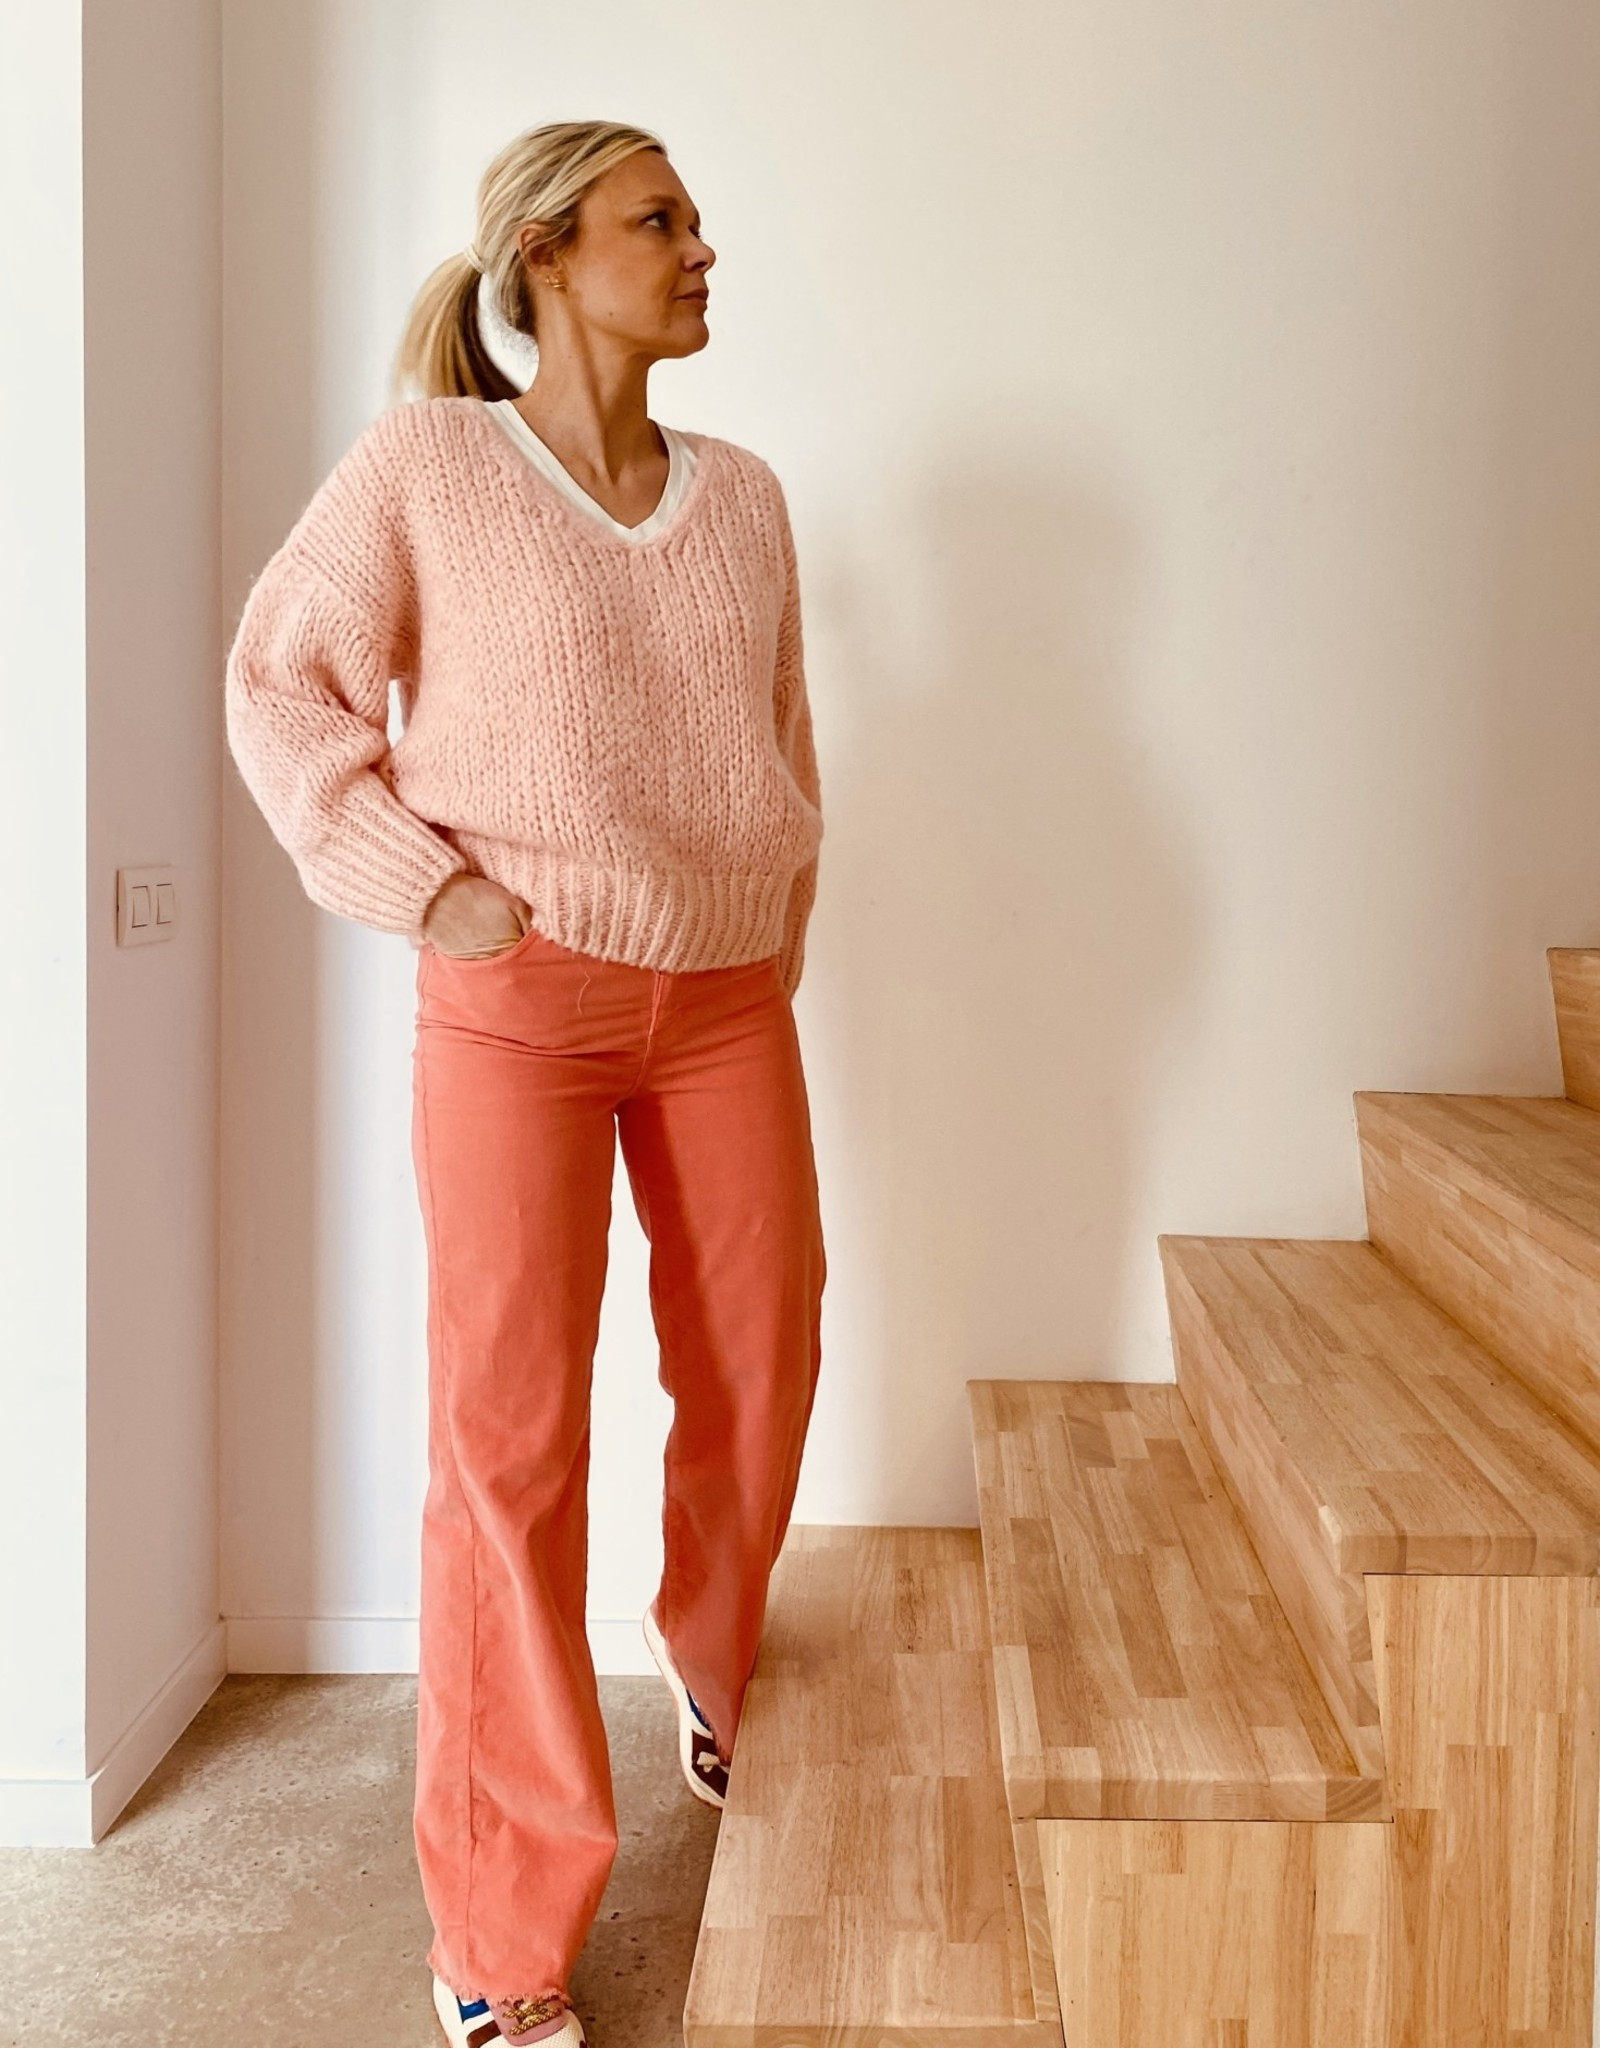 The Golden House Broek fijne ribfluweel 'Celeste' - Salmon